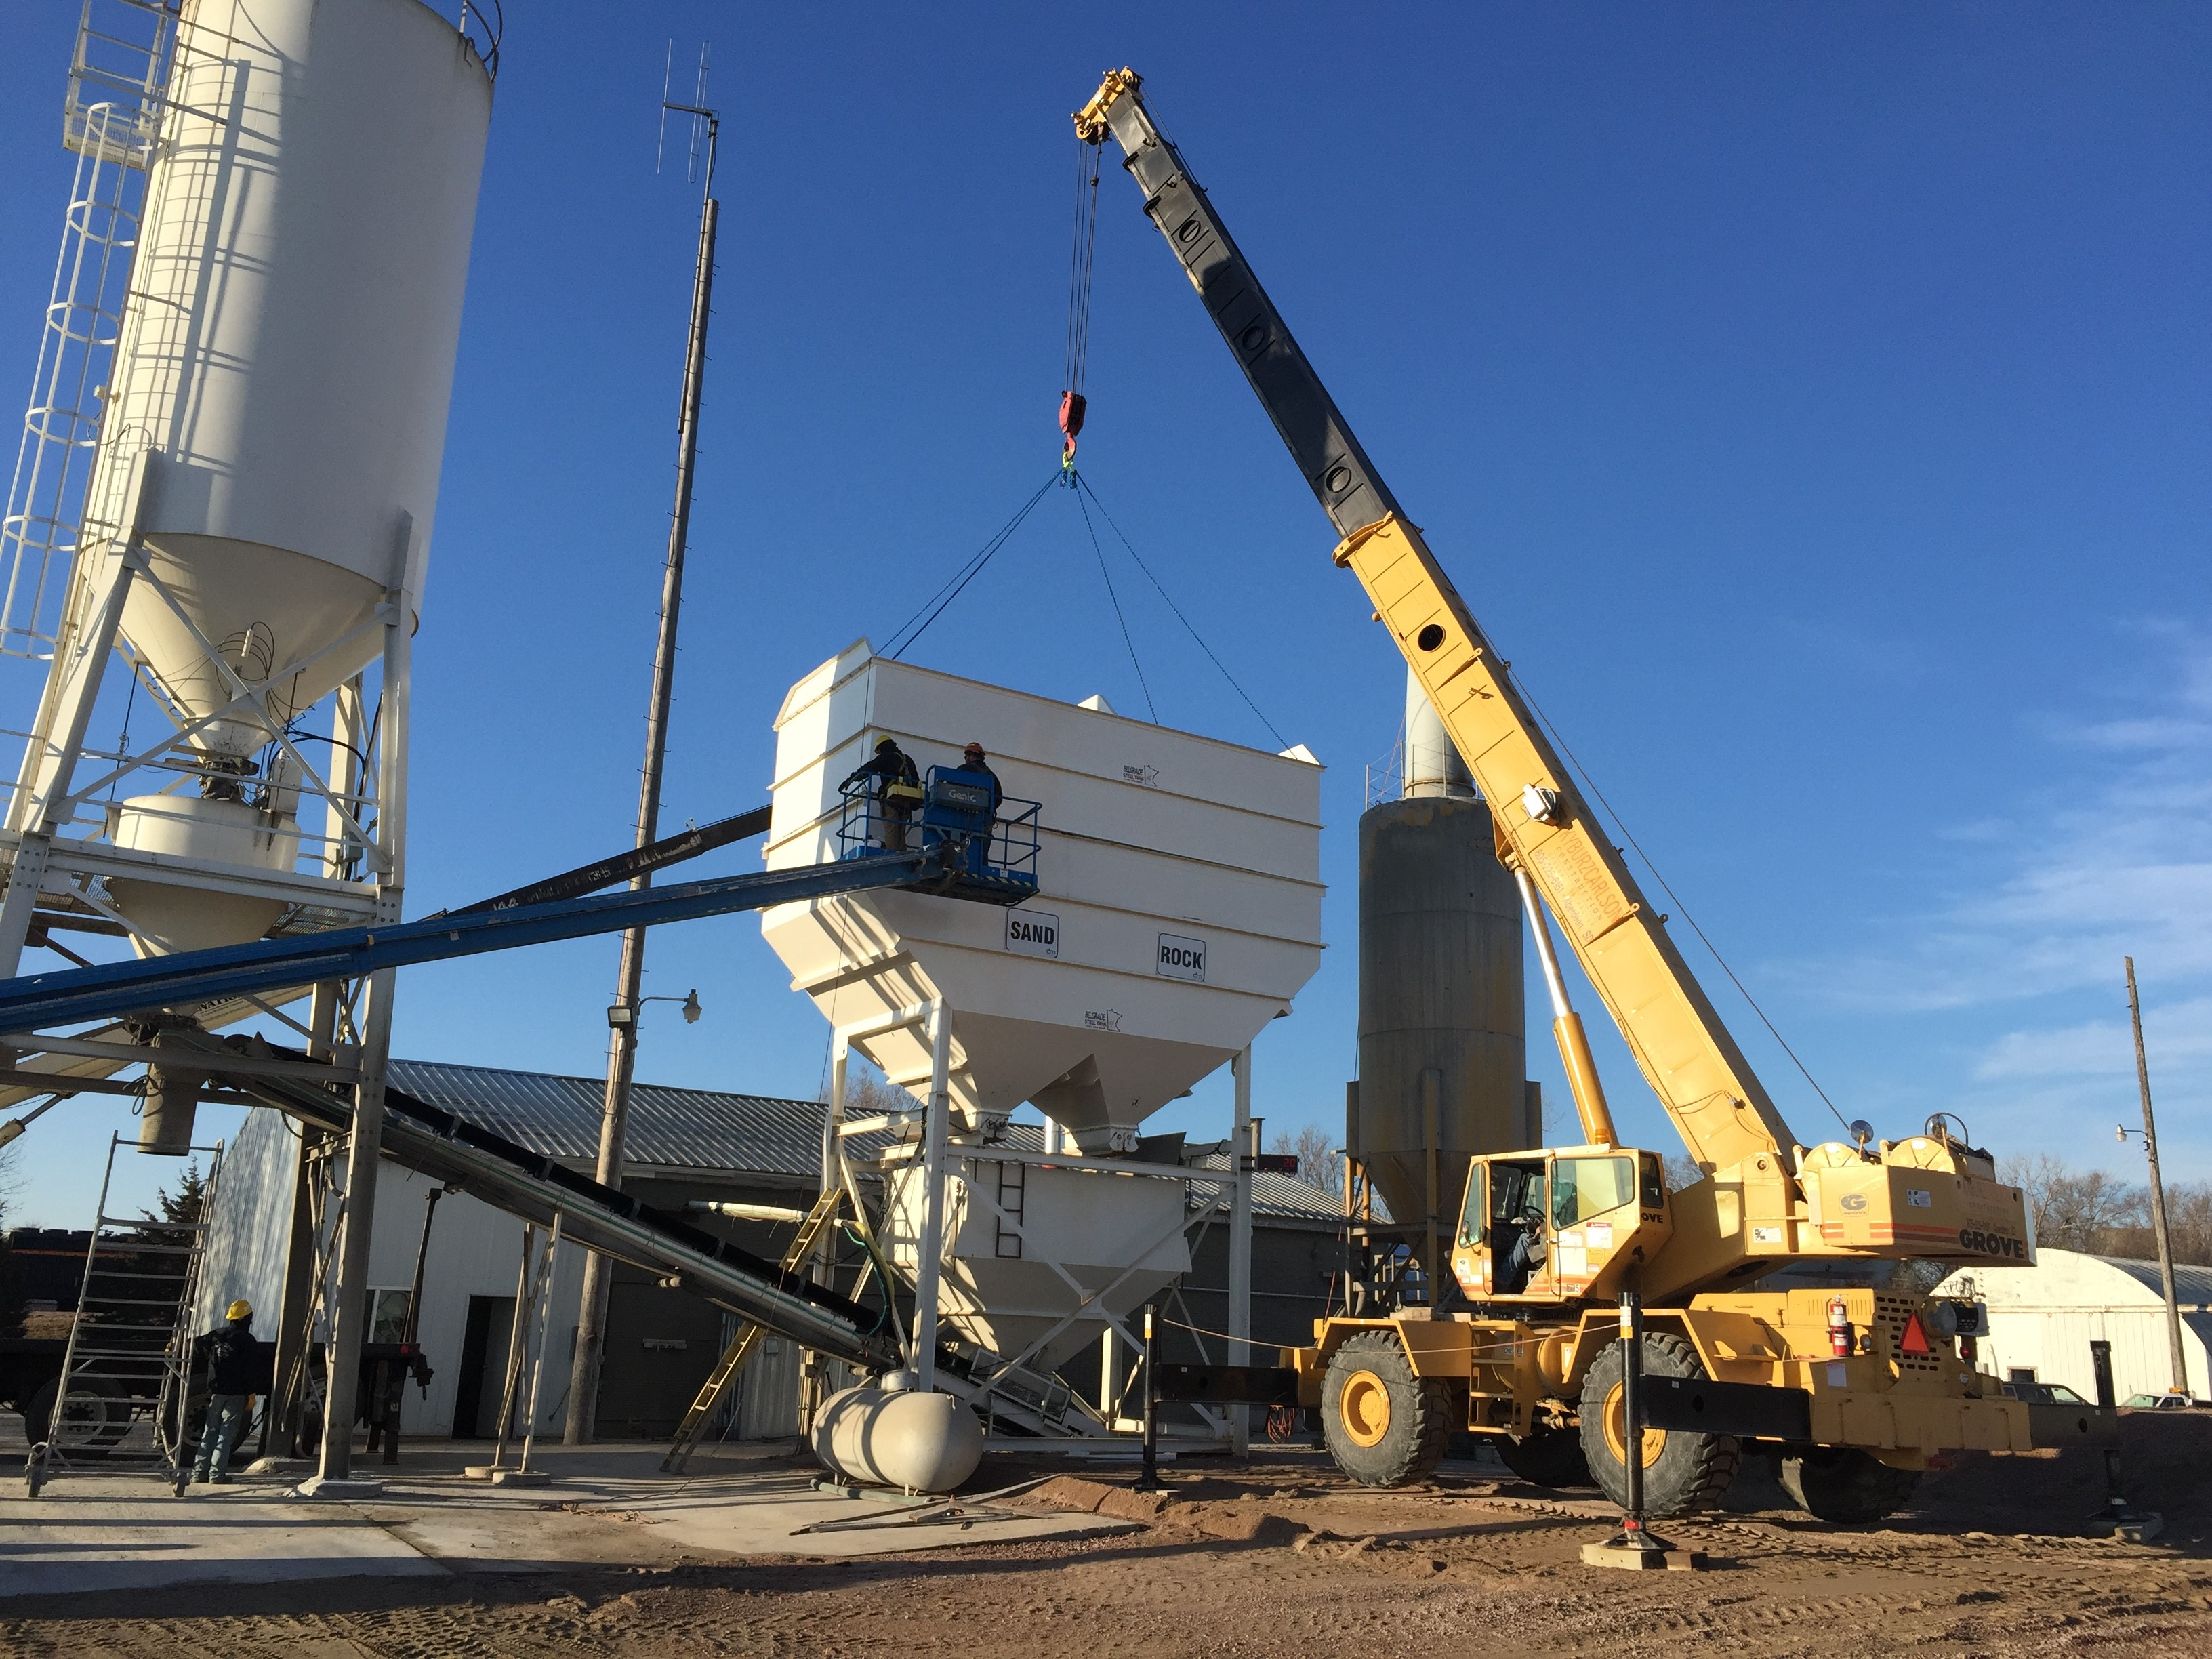 Dells Materials recently Underwent an Expansion to the Local Plant